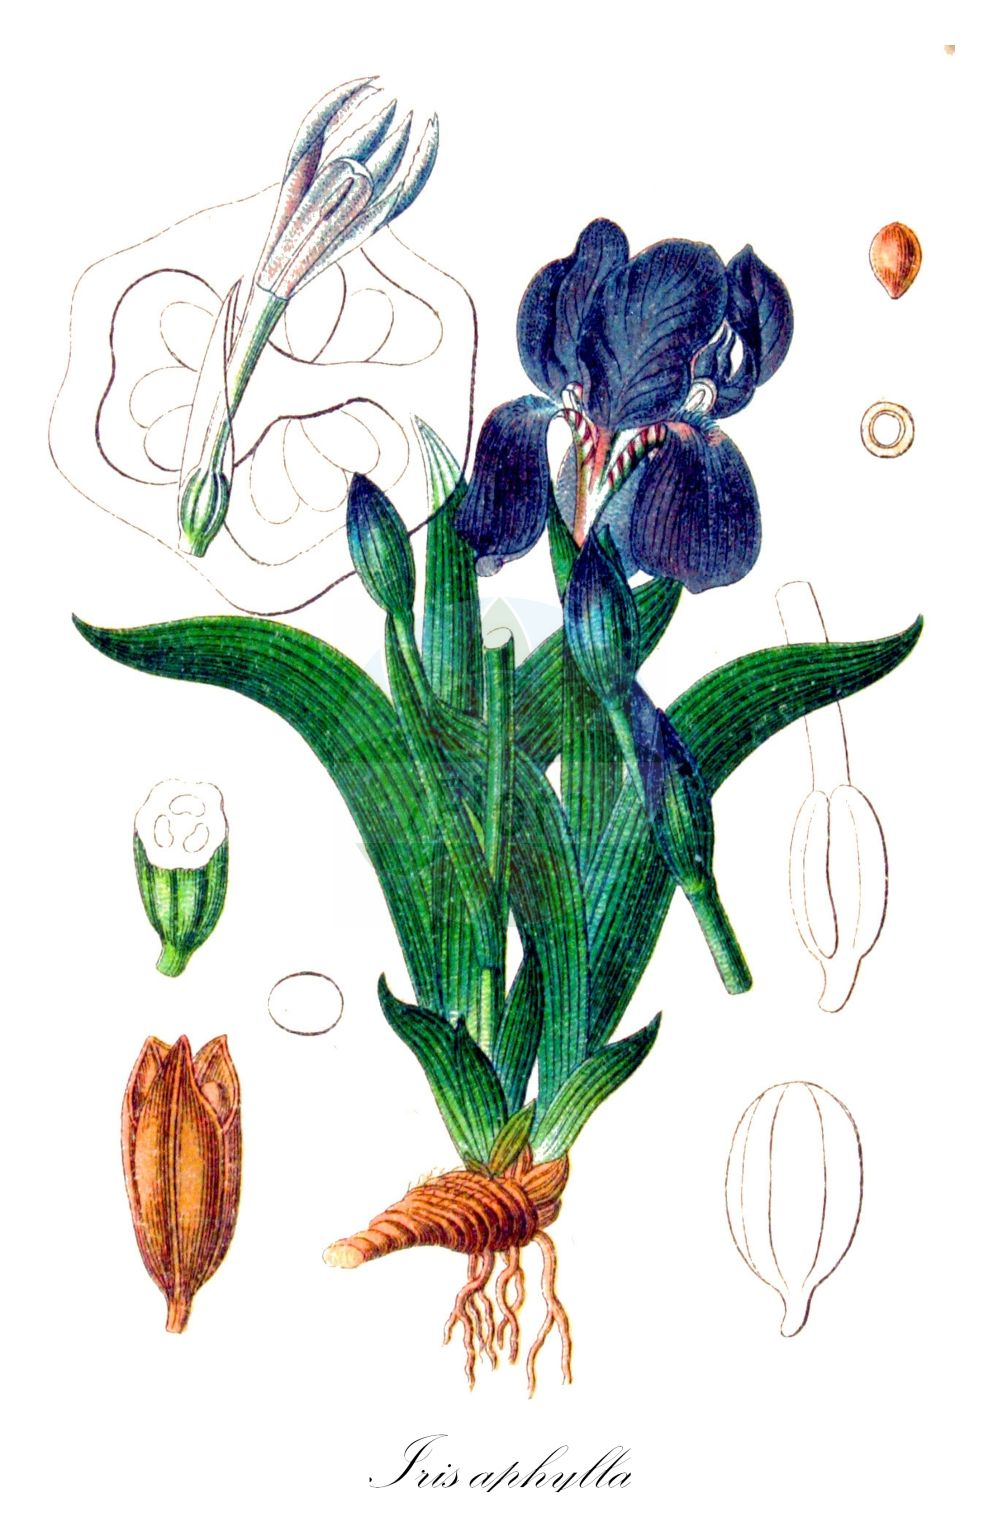 Historische Abbildung von Iris aphylla (Nacktstaengelige Schwertlilie - Stool Iris). Das Bild zeigt Blatt, Bluete, Frucht und Same. ---- Historical Drawing of Iris aphylla (Nacktstaengelige Schwertlilie - Stool Iris).The image is showing leaf, flower, fruit and seed. (Iris aphylla,Nacktstaengelige Schwertlilie,Stool Iris,Iris babadagica,Iris bifurca,Iris bisflorens,Iris bohemica,Iris breviscapa,Iris dacica,Iris diantha,Iris duerinckii,Iris extrafoliacea,Iris falcata,Iris fieberi,Iris furcata,Iris hungarica,Iris melzeri,Iris nudicaulis,Iris perrieri,Iris reflexa,Iris rigida,Iris sabina,Iris schmidtii,Iris subtriflora,Iris tenorei,Nacktstengelige Schwertlilie,Iris,Schwertlilie,Iris,Iridaceae,Schwertliliengewaechse,Iris family,Blatt,Bluete,Frucht,Same,leaf,flower,fruit,seed,Sturm (1796f))